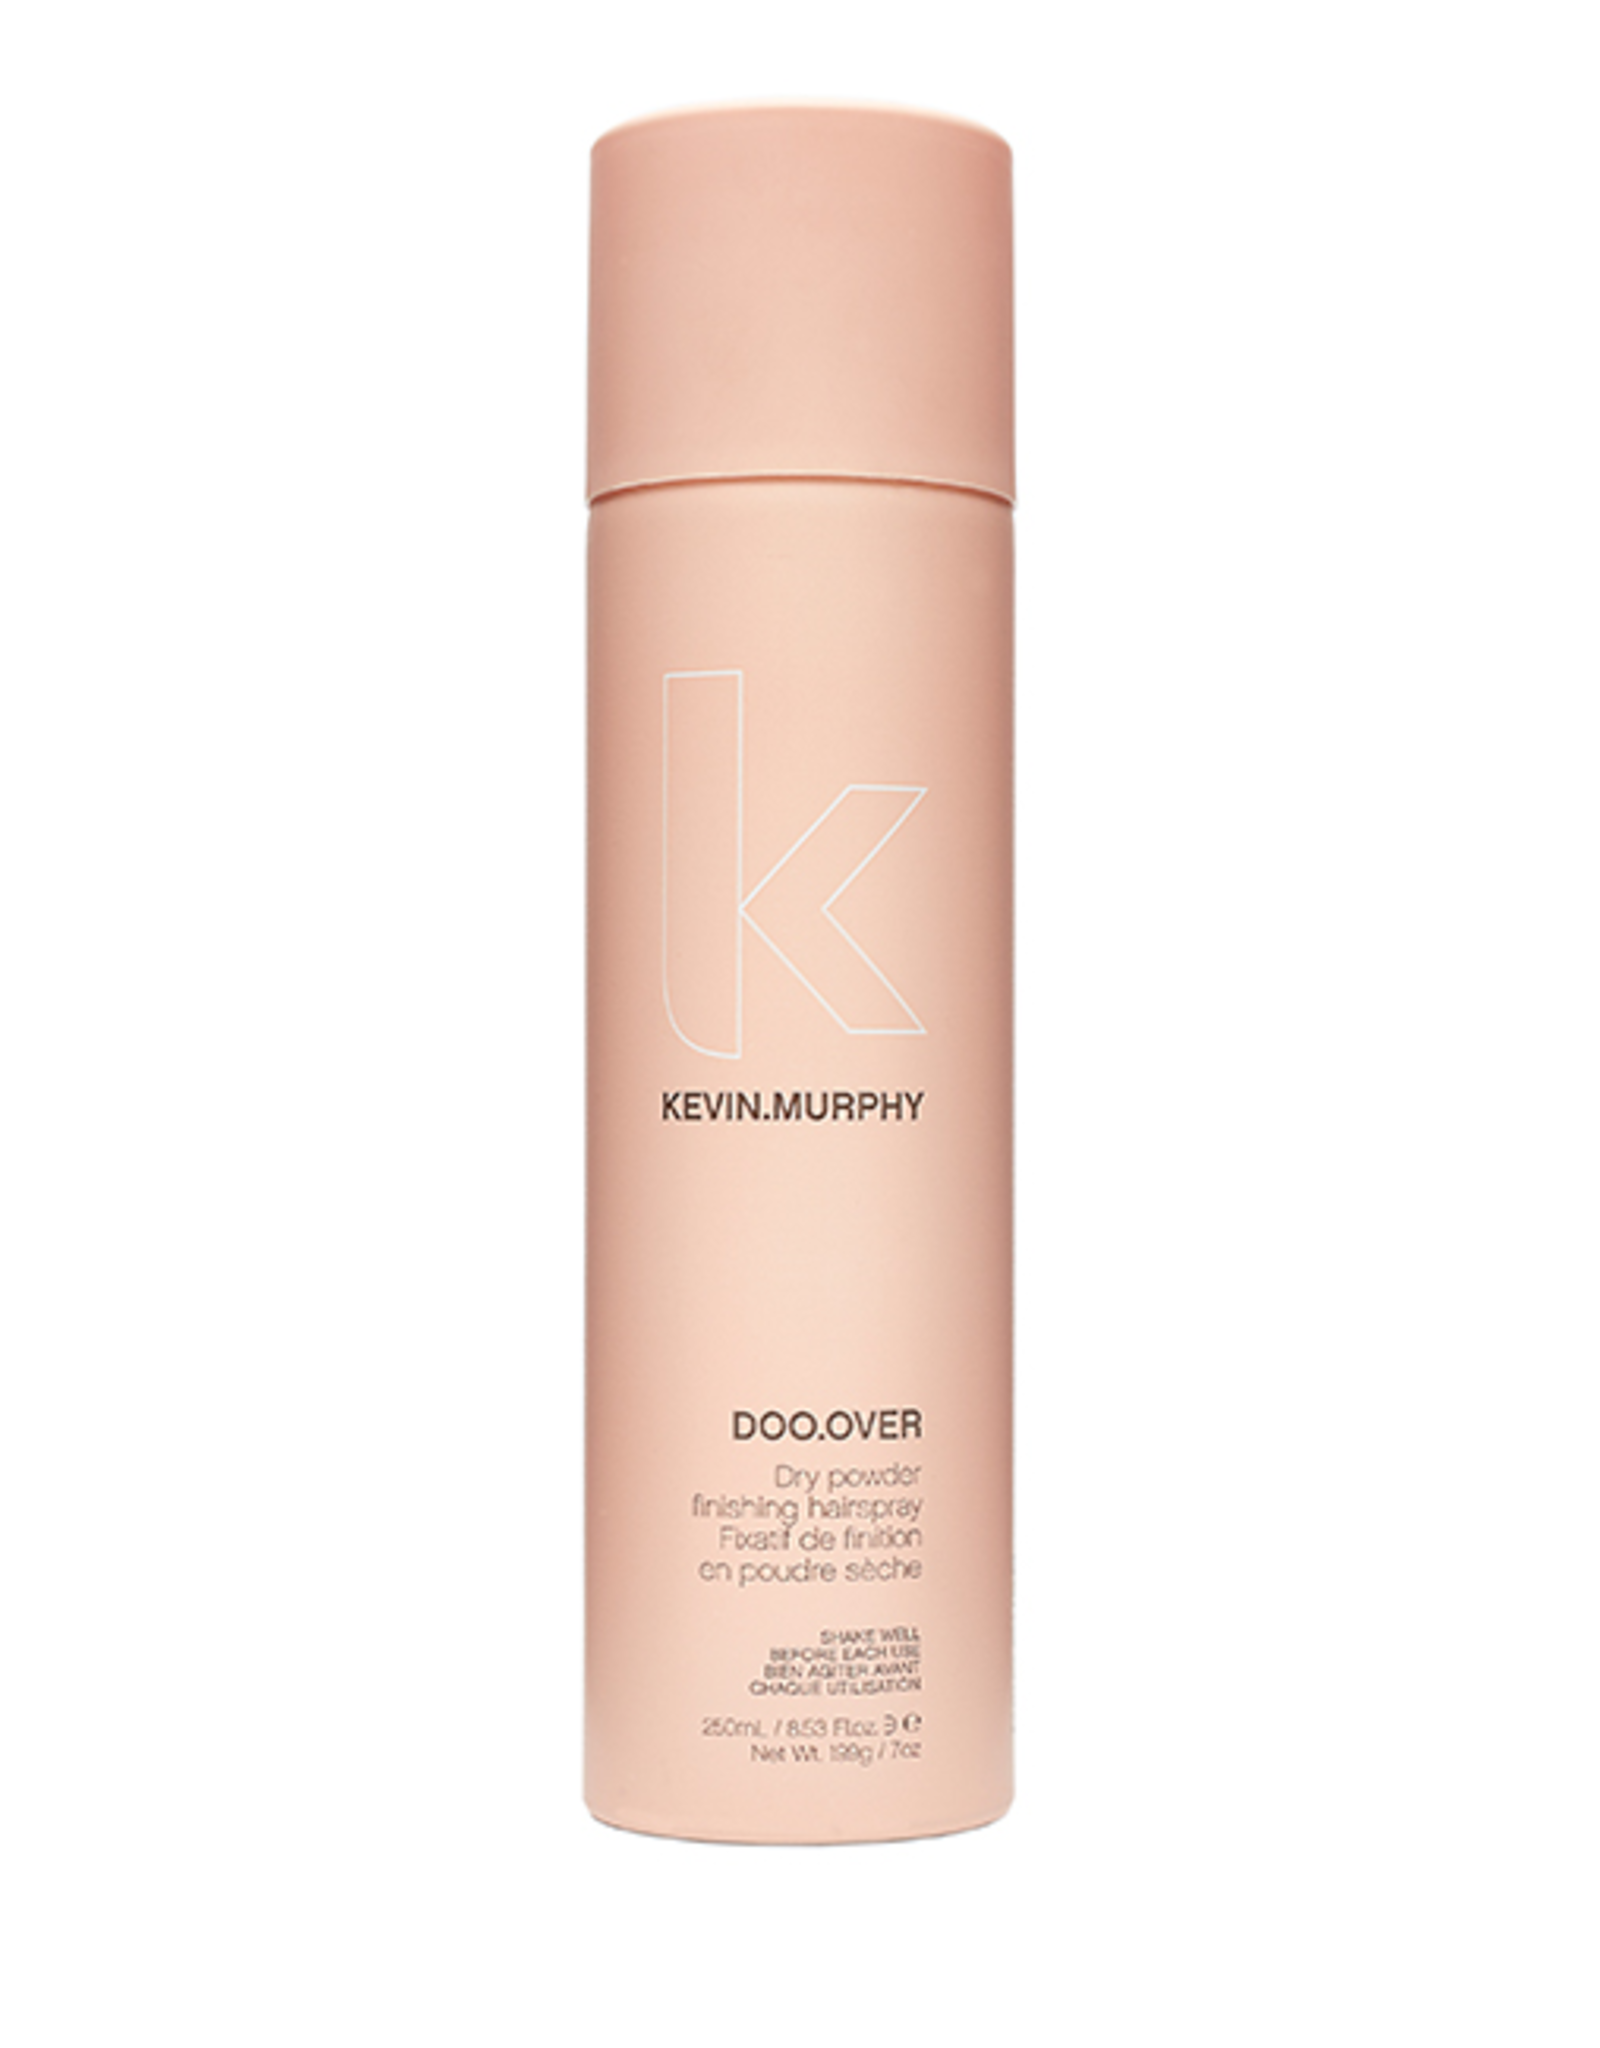 KEVIN.MURPHY Doo.Over (100 ml) - SPECIAL EDITION